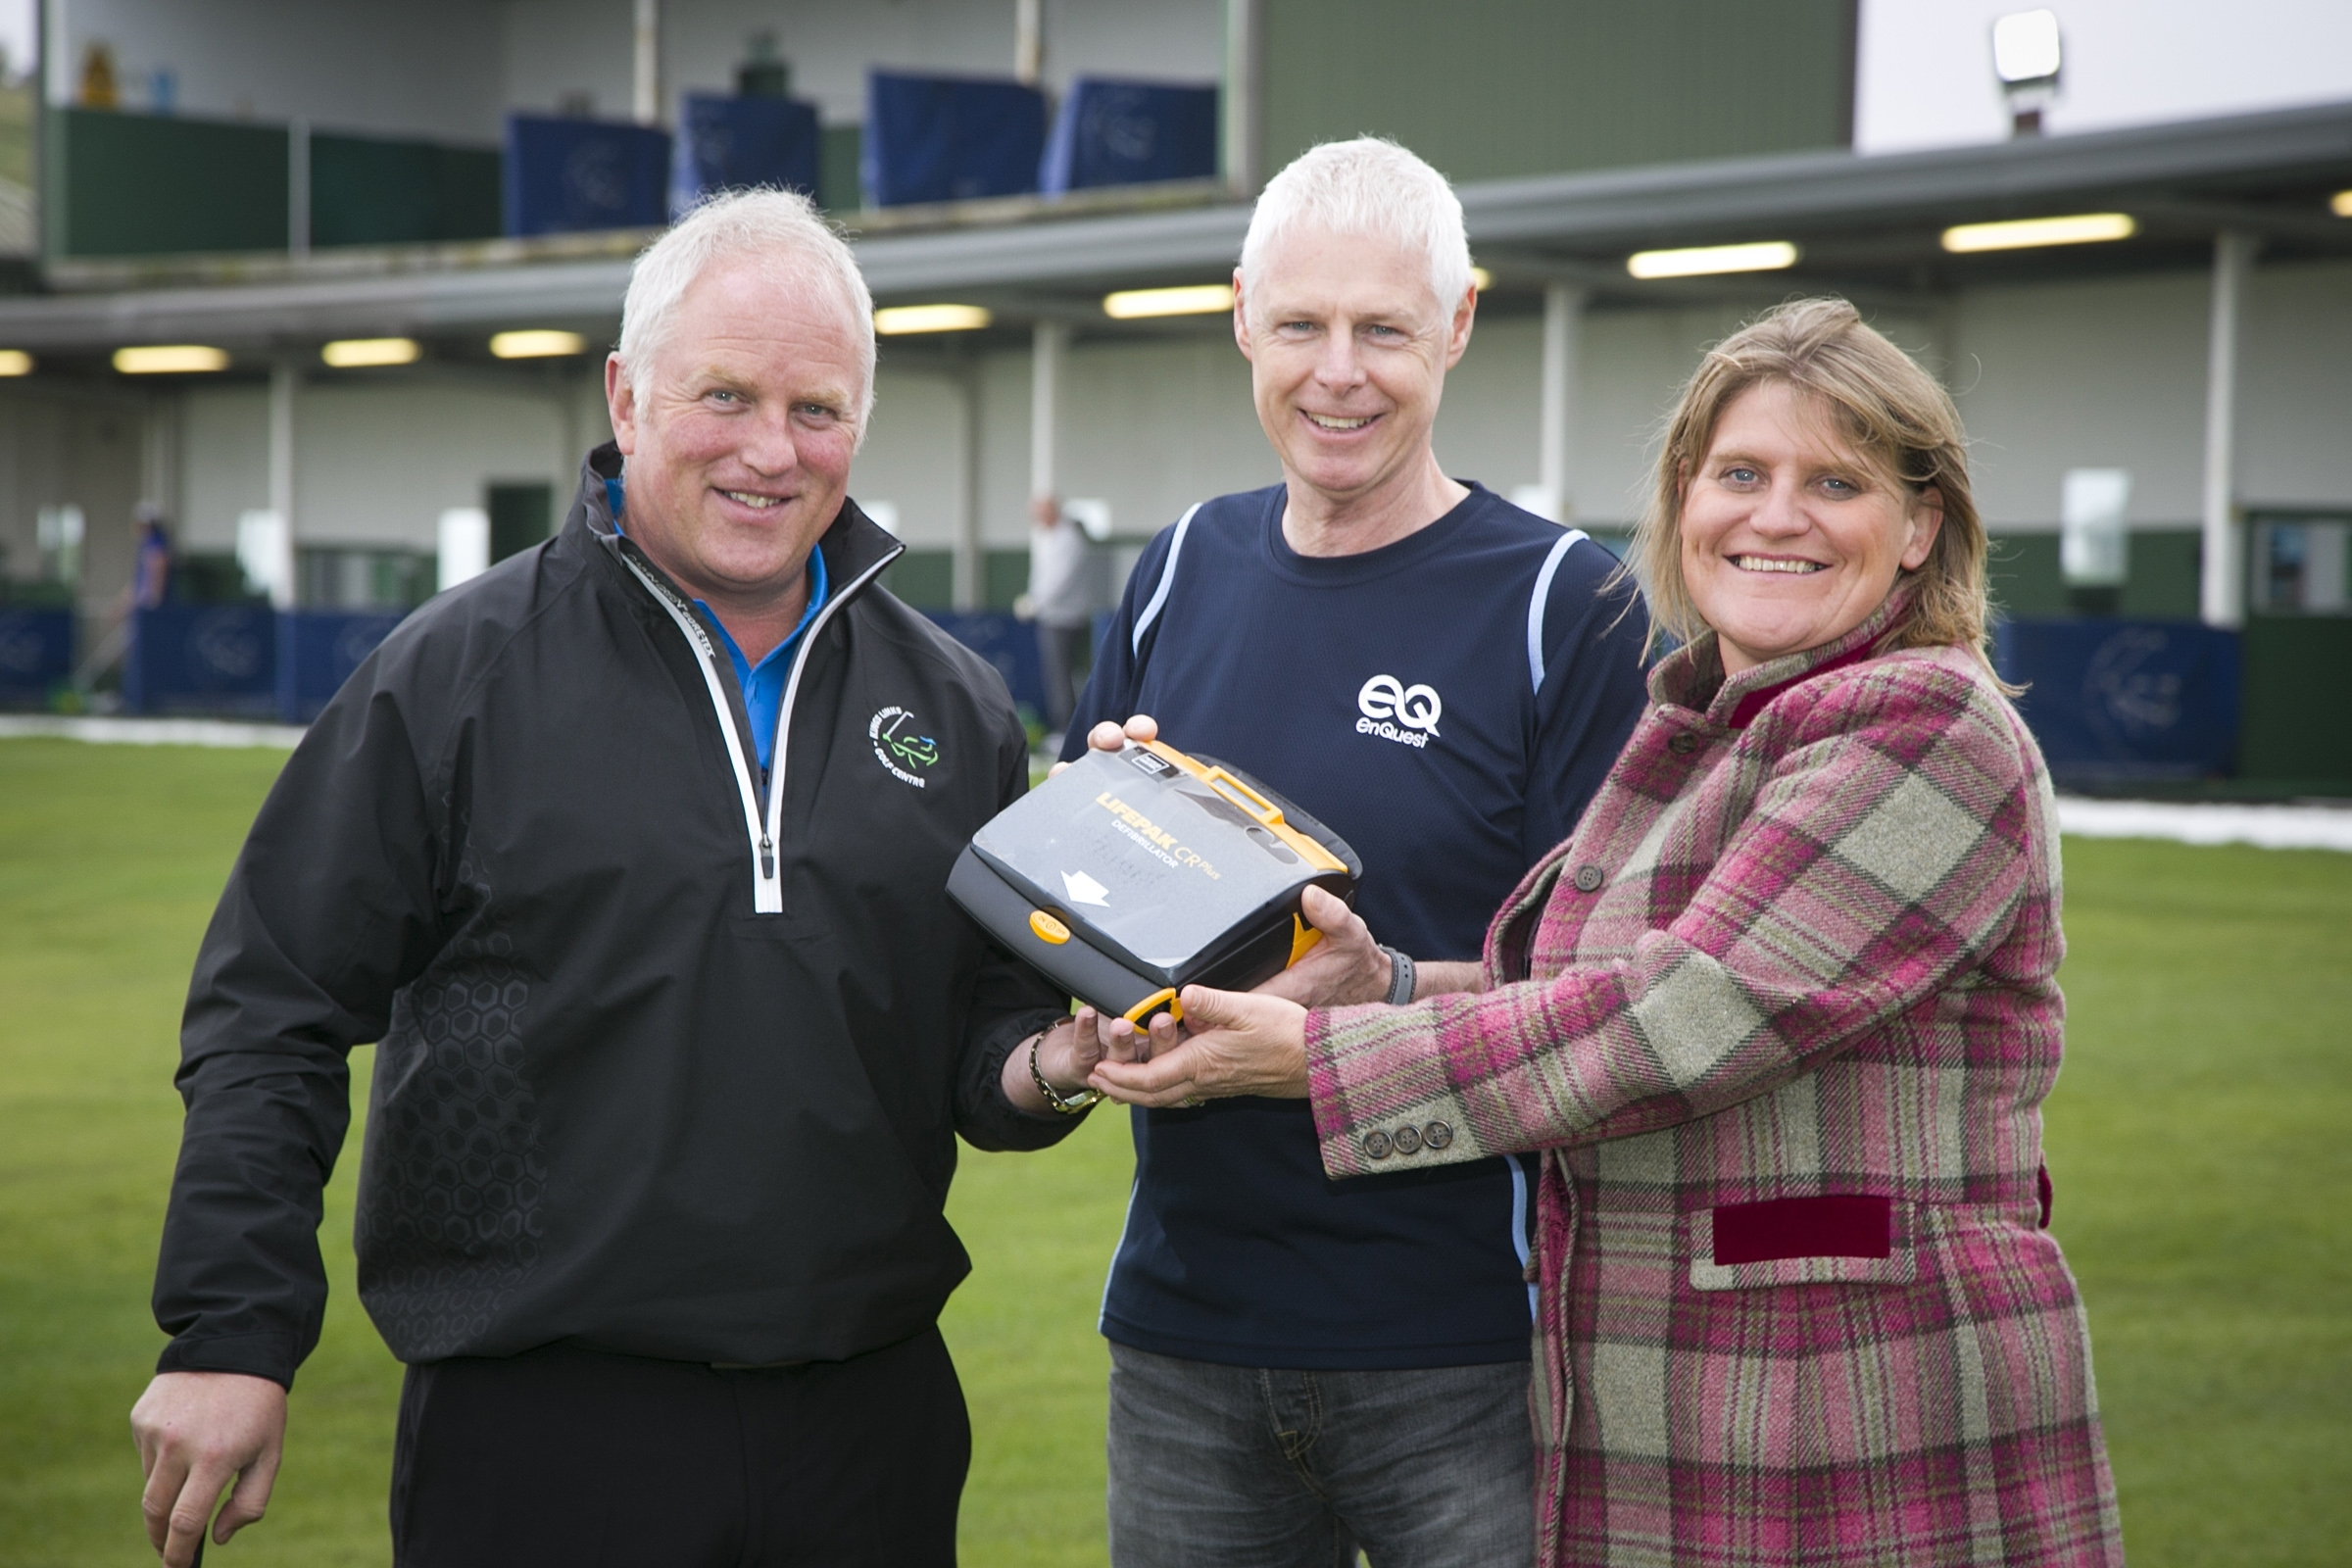 Paul Girvan (direcotr of golf, Kings Links), John Atkinson (Head of HSE+A at EnQuest) and Allison Walker (director of sales and marketing, Falck Safety Services)